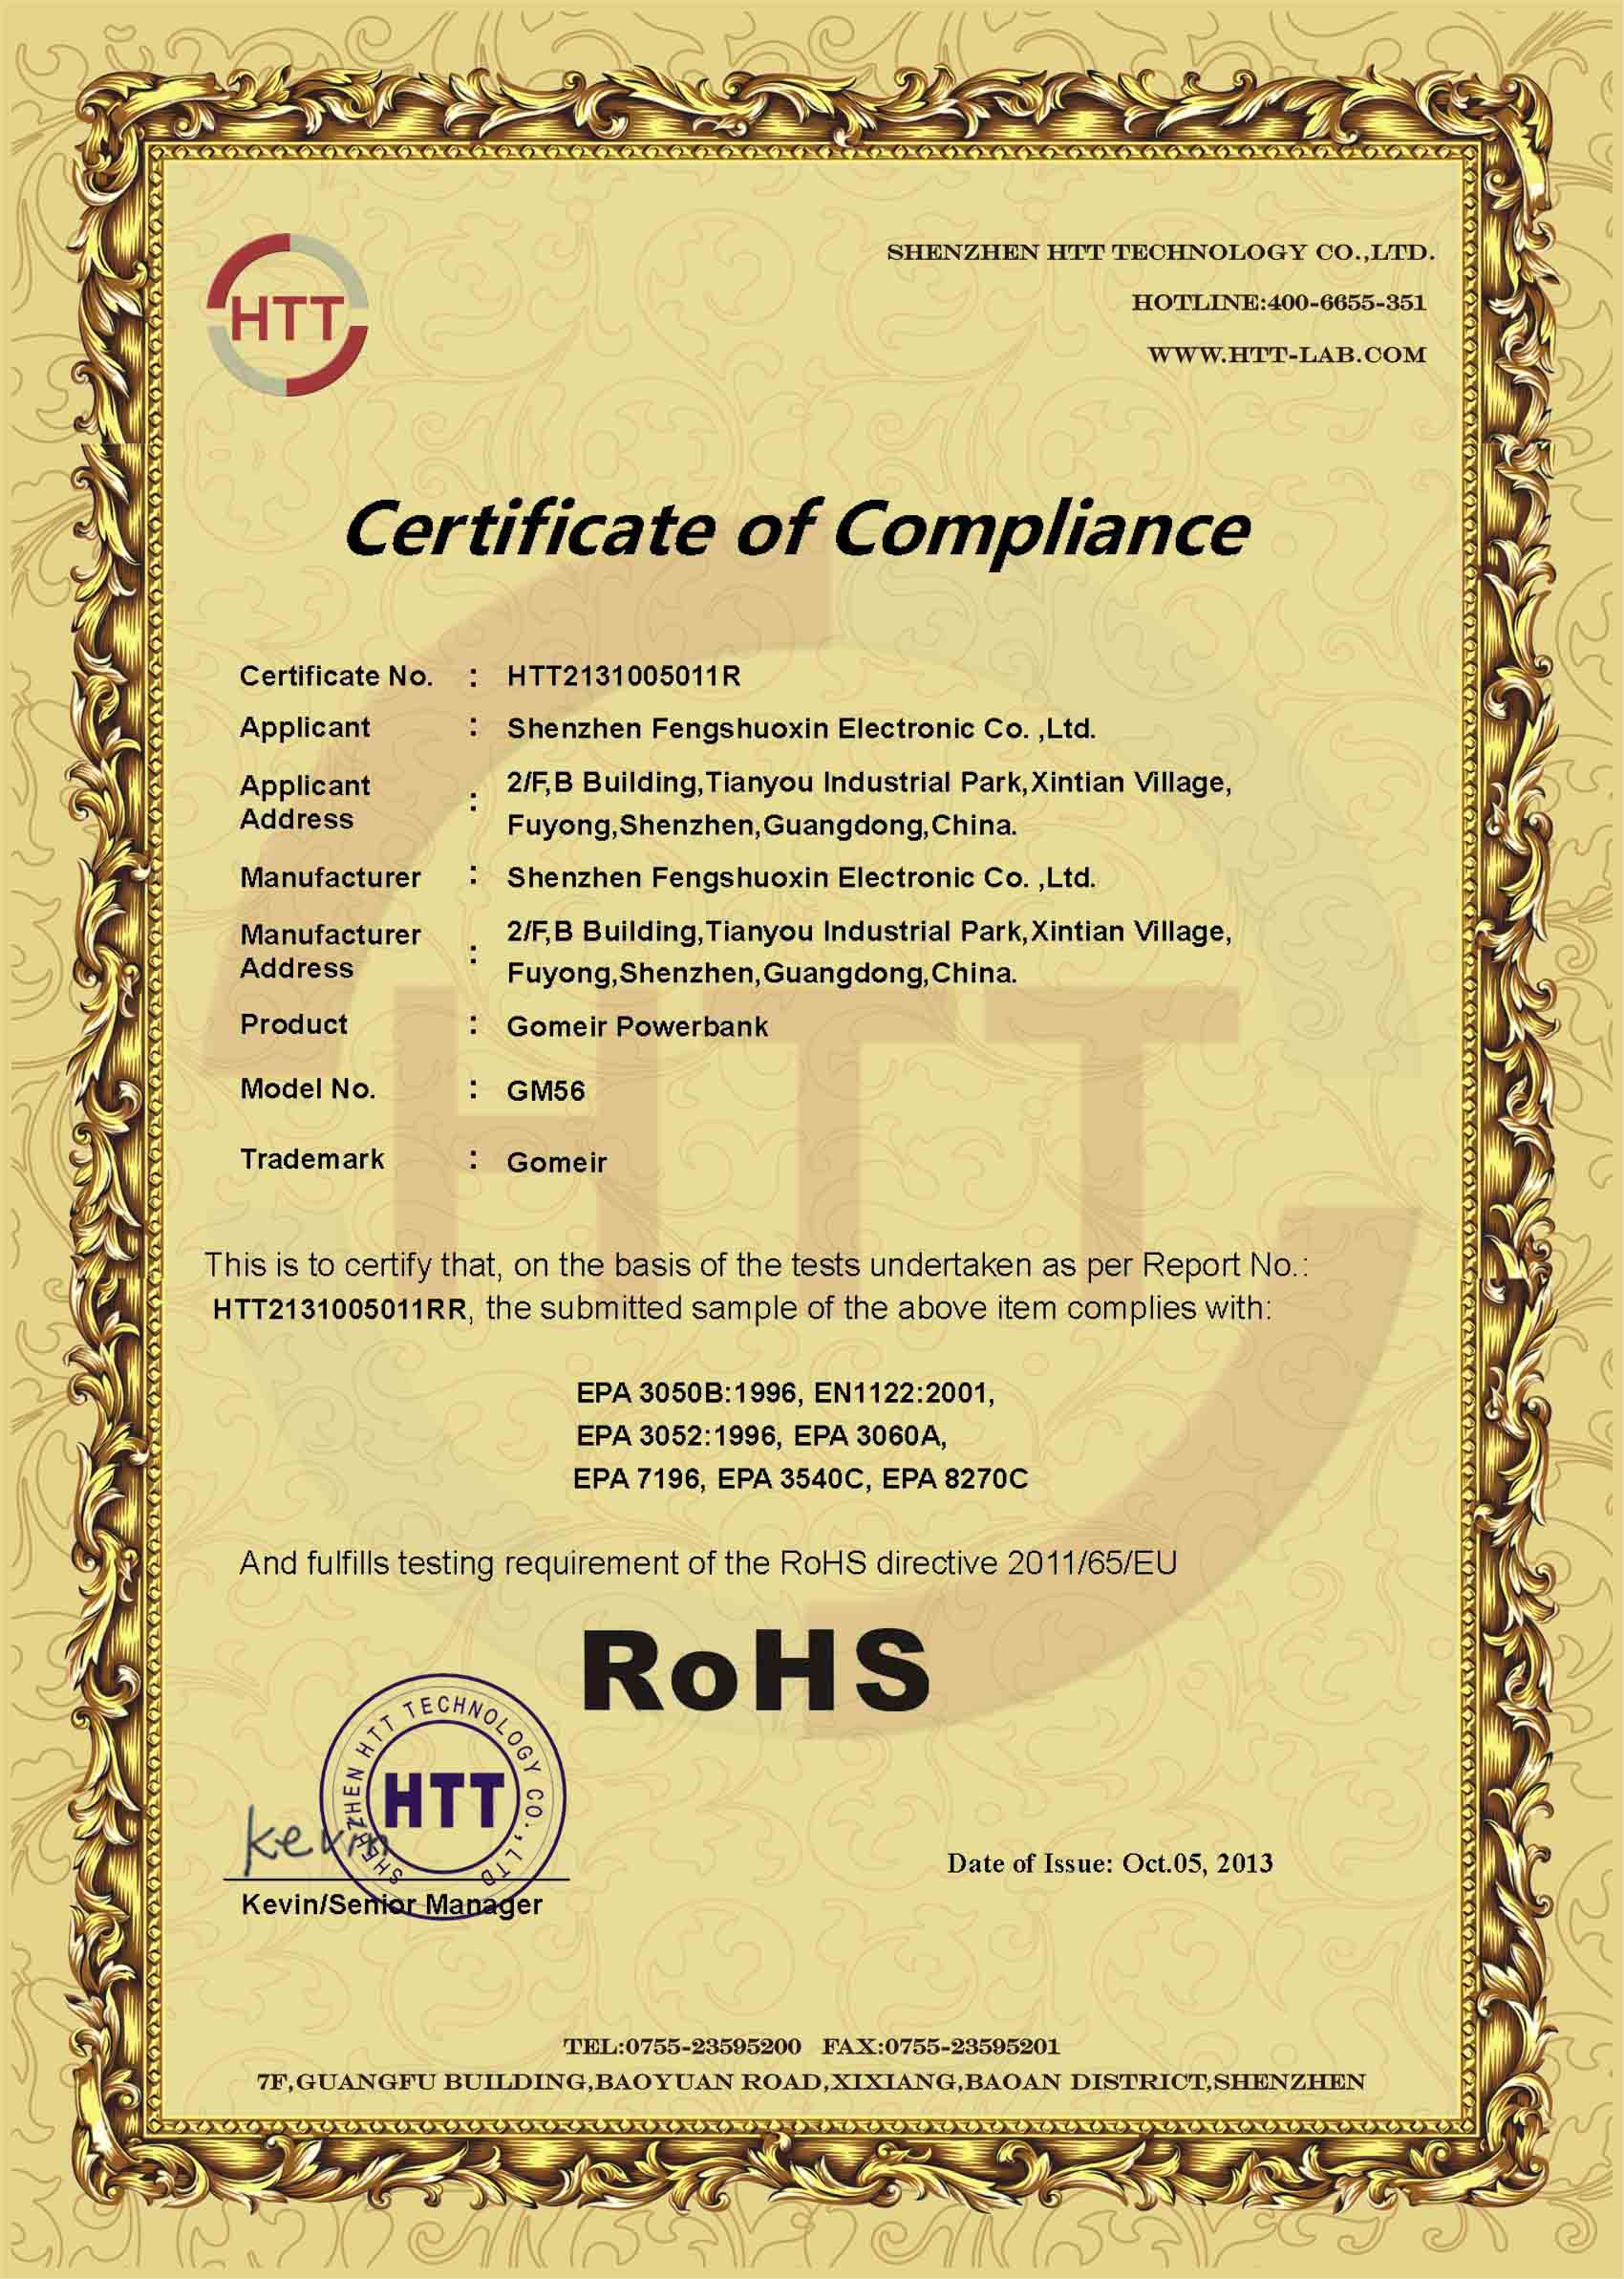 Rohs compliance certificate sample images for Rohs certificate of compliance template